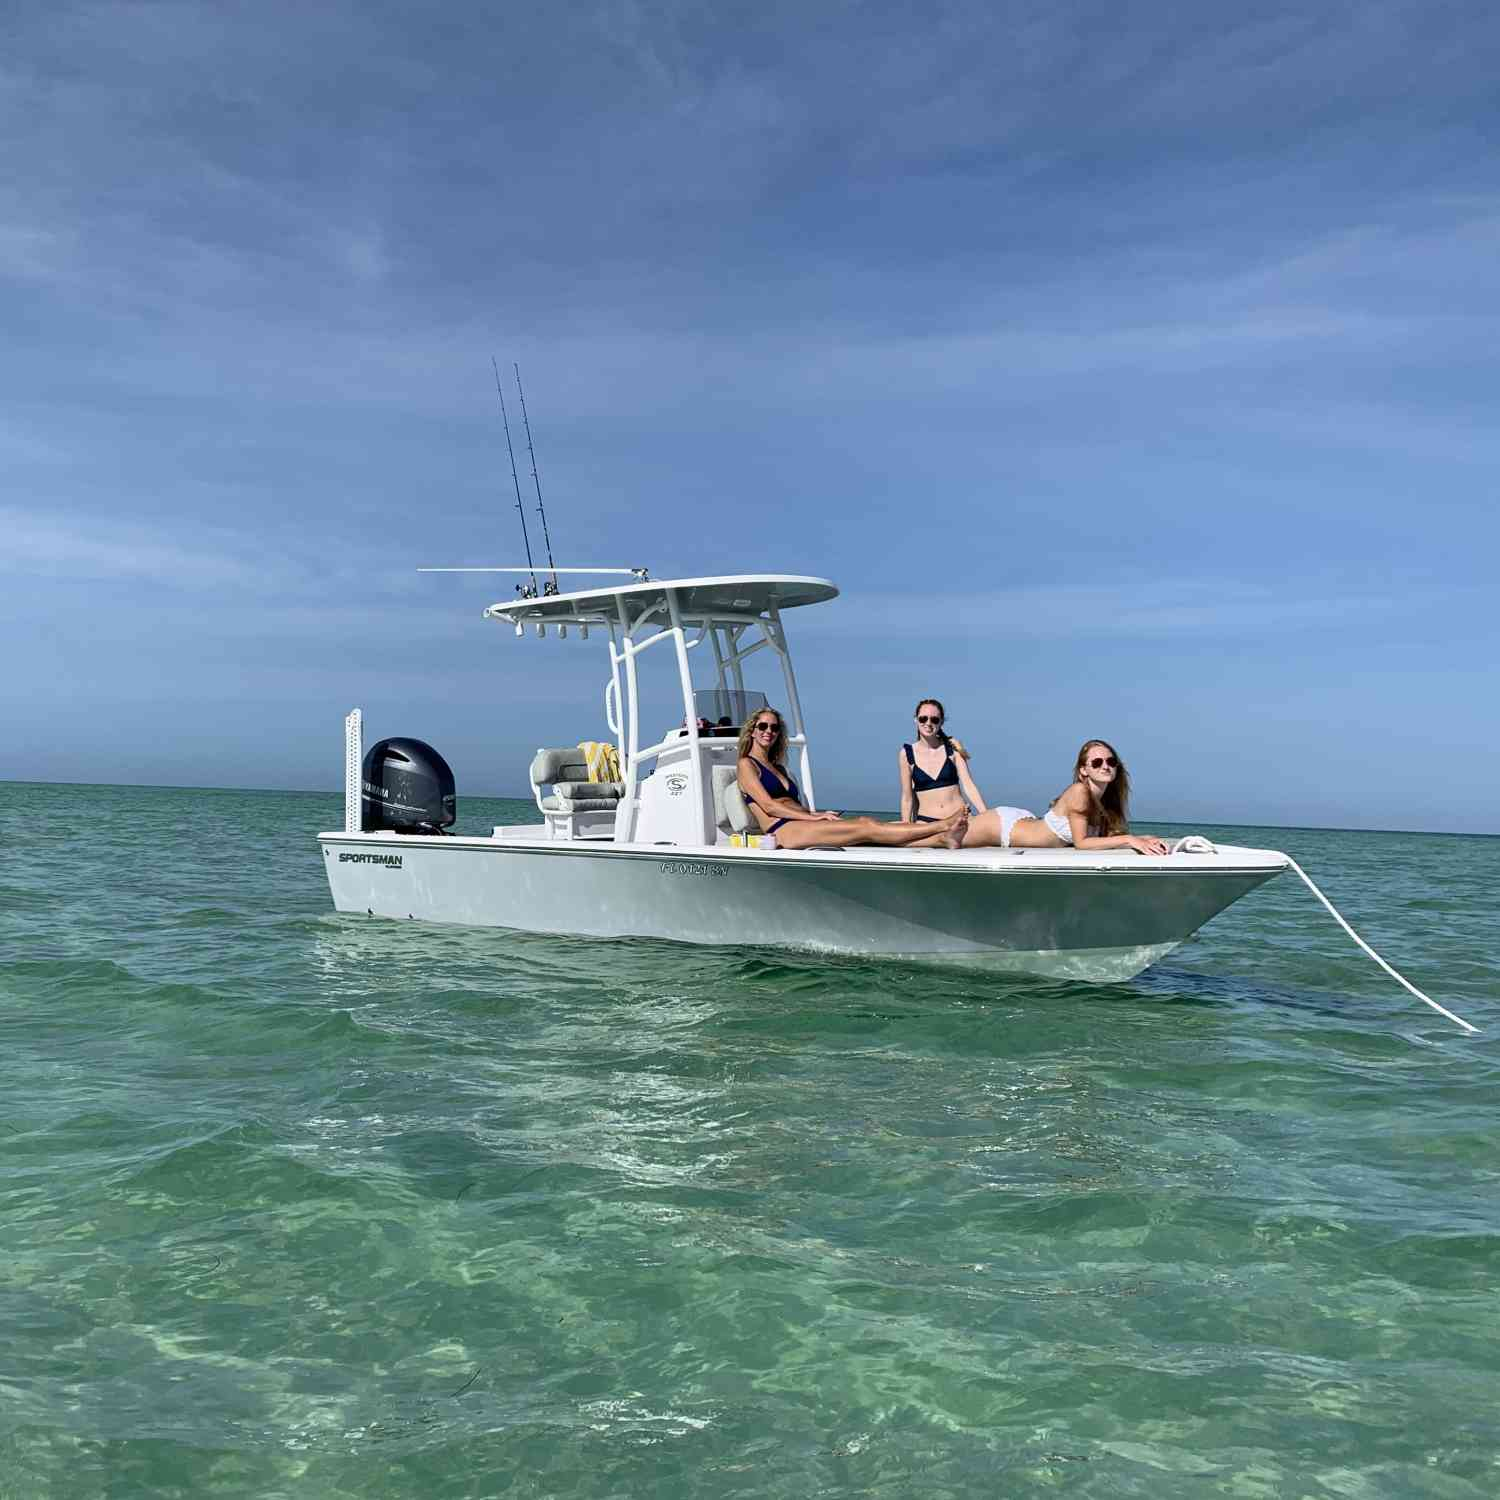 Great day on the water with a great boat!  Happy wife and kids, happy life!